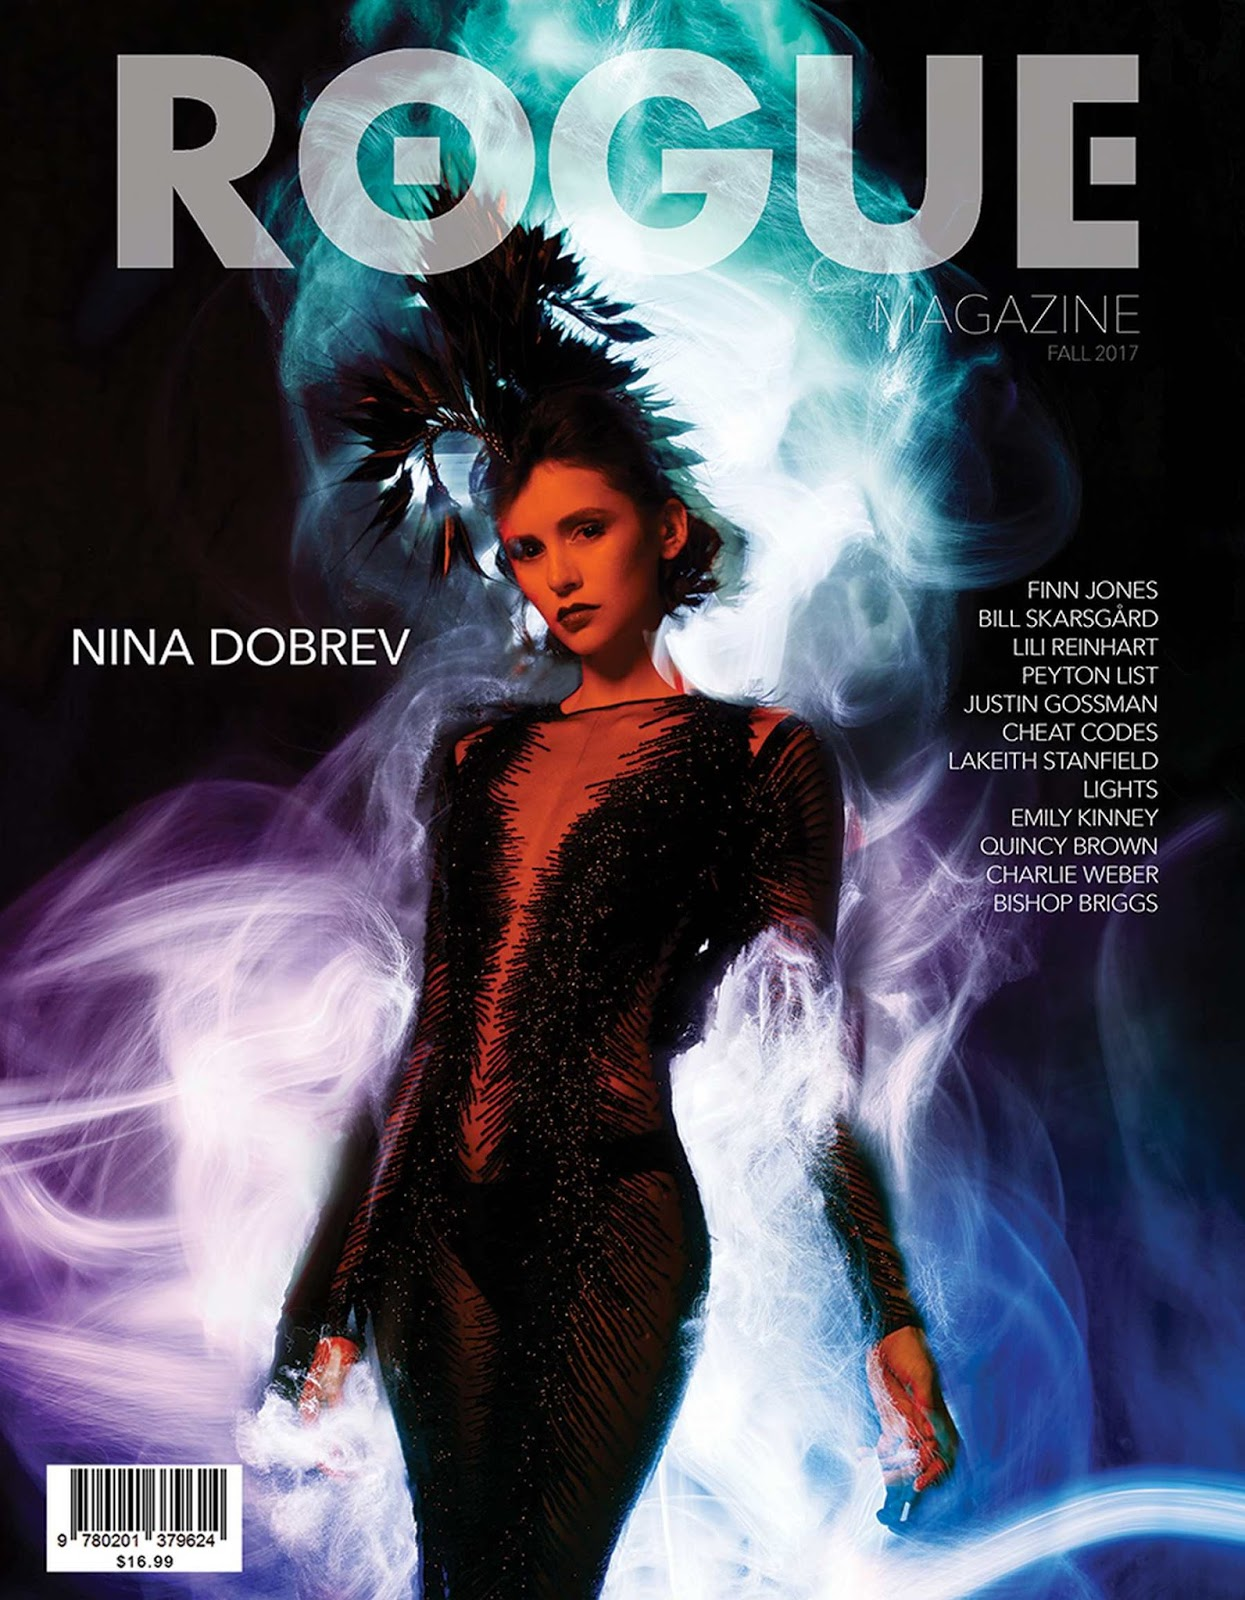 Nina Dobrev charms for Rouge Magazine Fall 2017